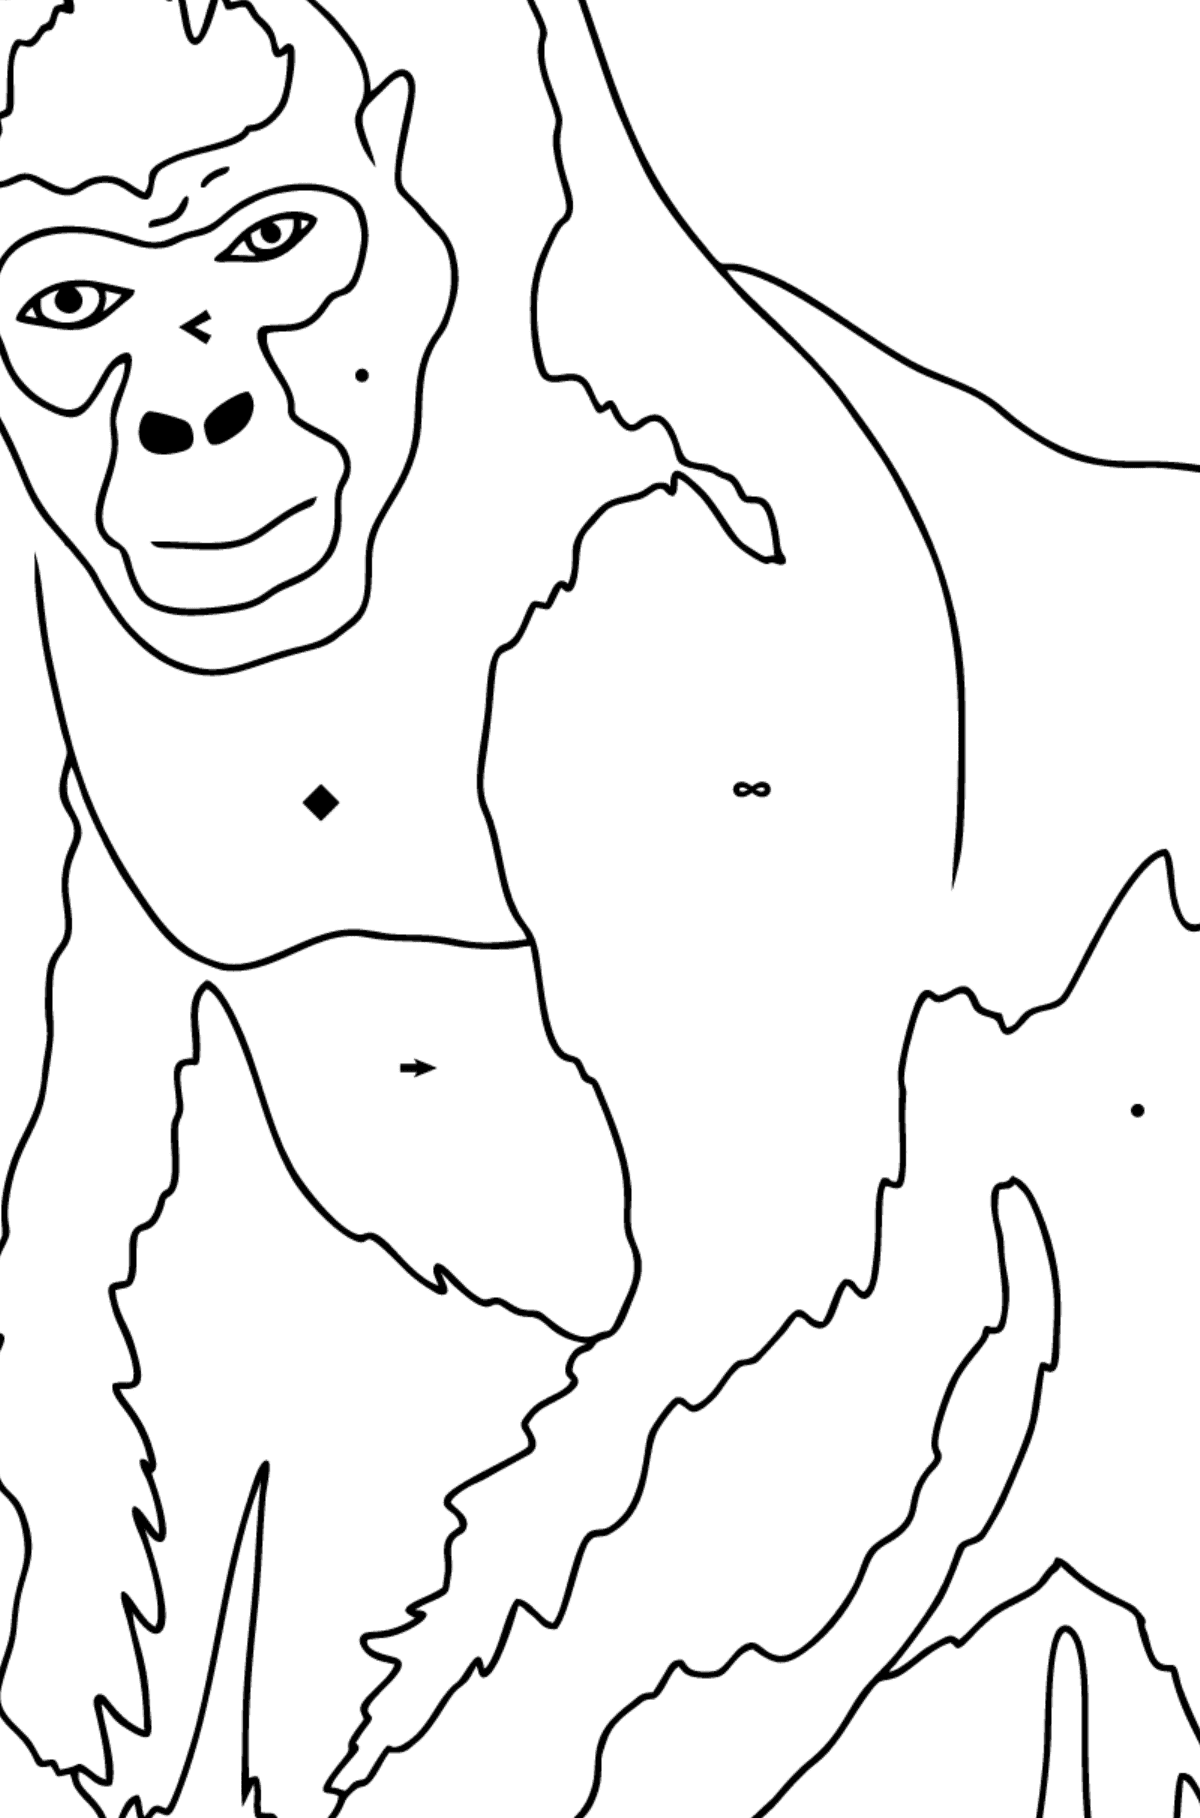 Coloring Page - A Real Gorilla - Coloring by Symbols for Children